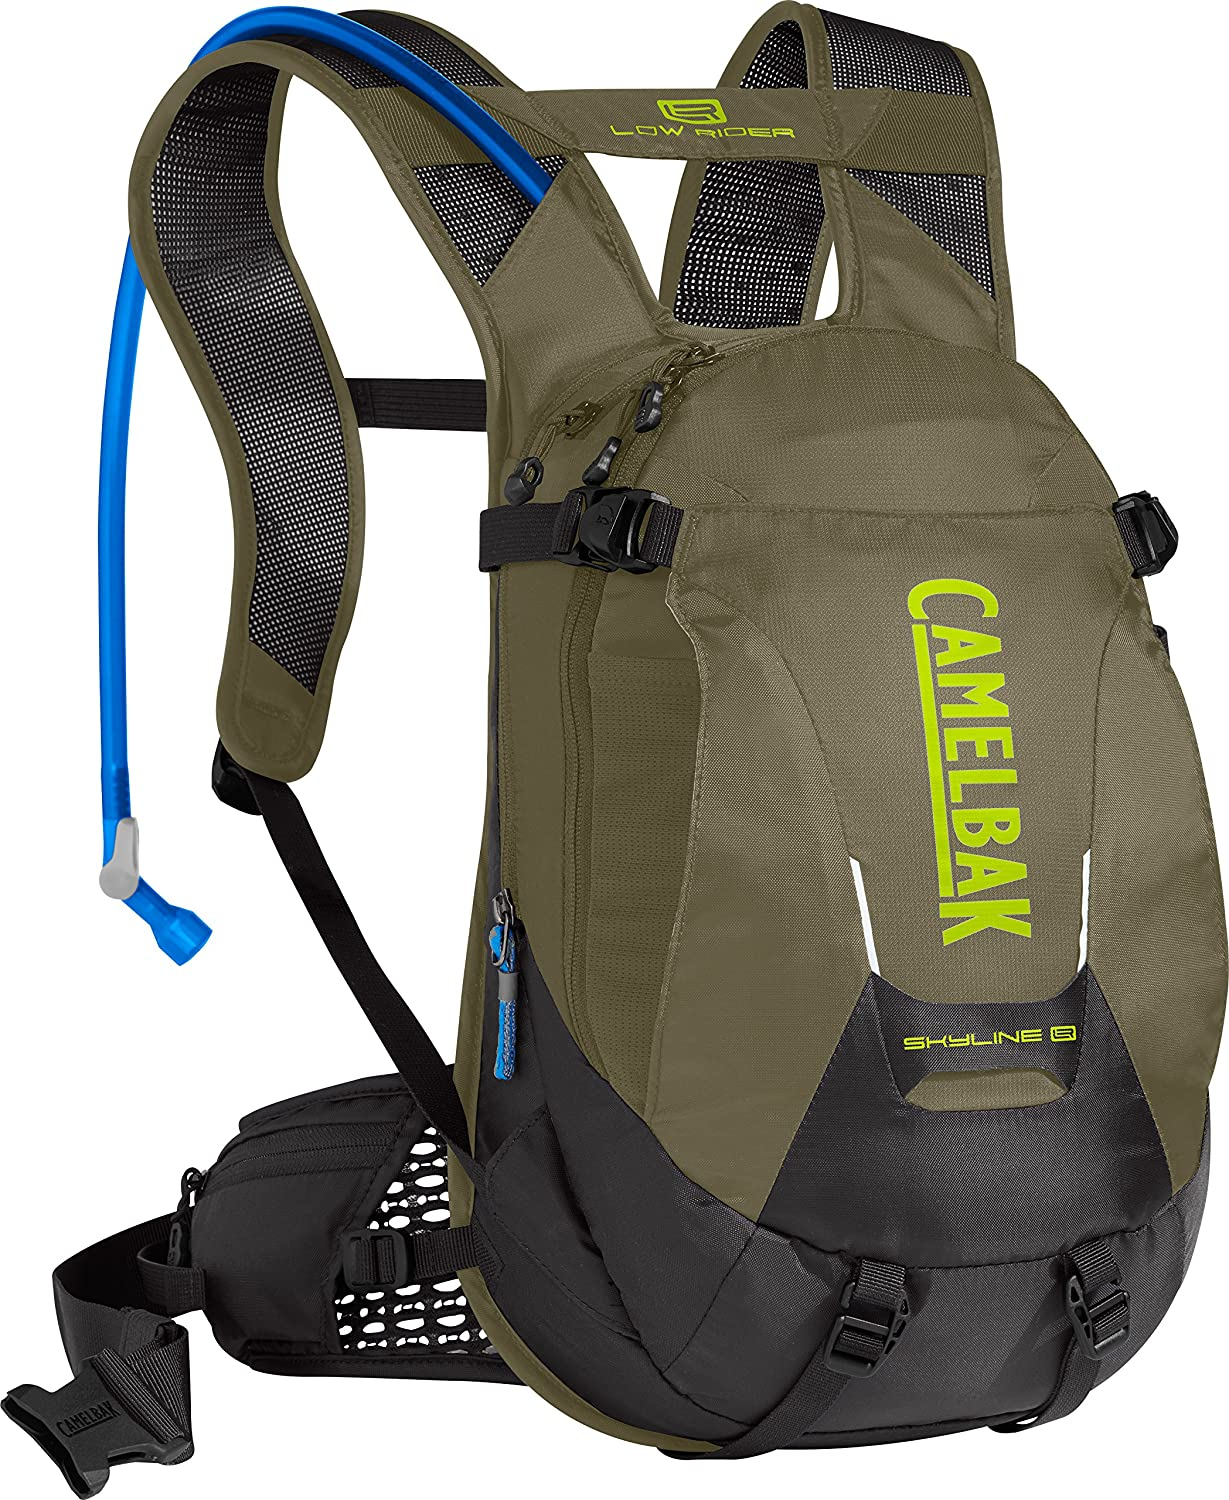 CamelBak 2018 Skyline LR 10 Hydration Pack, 100oz